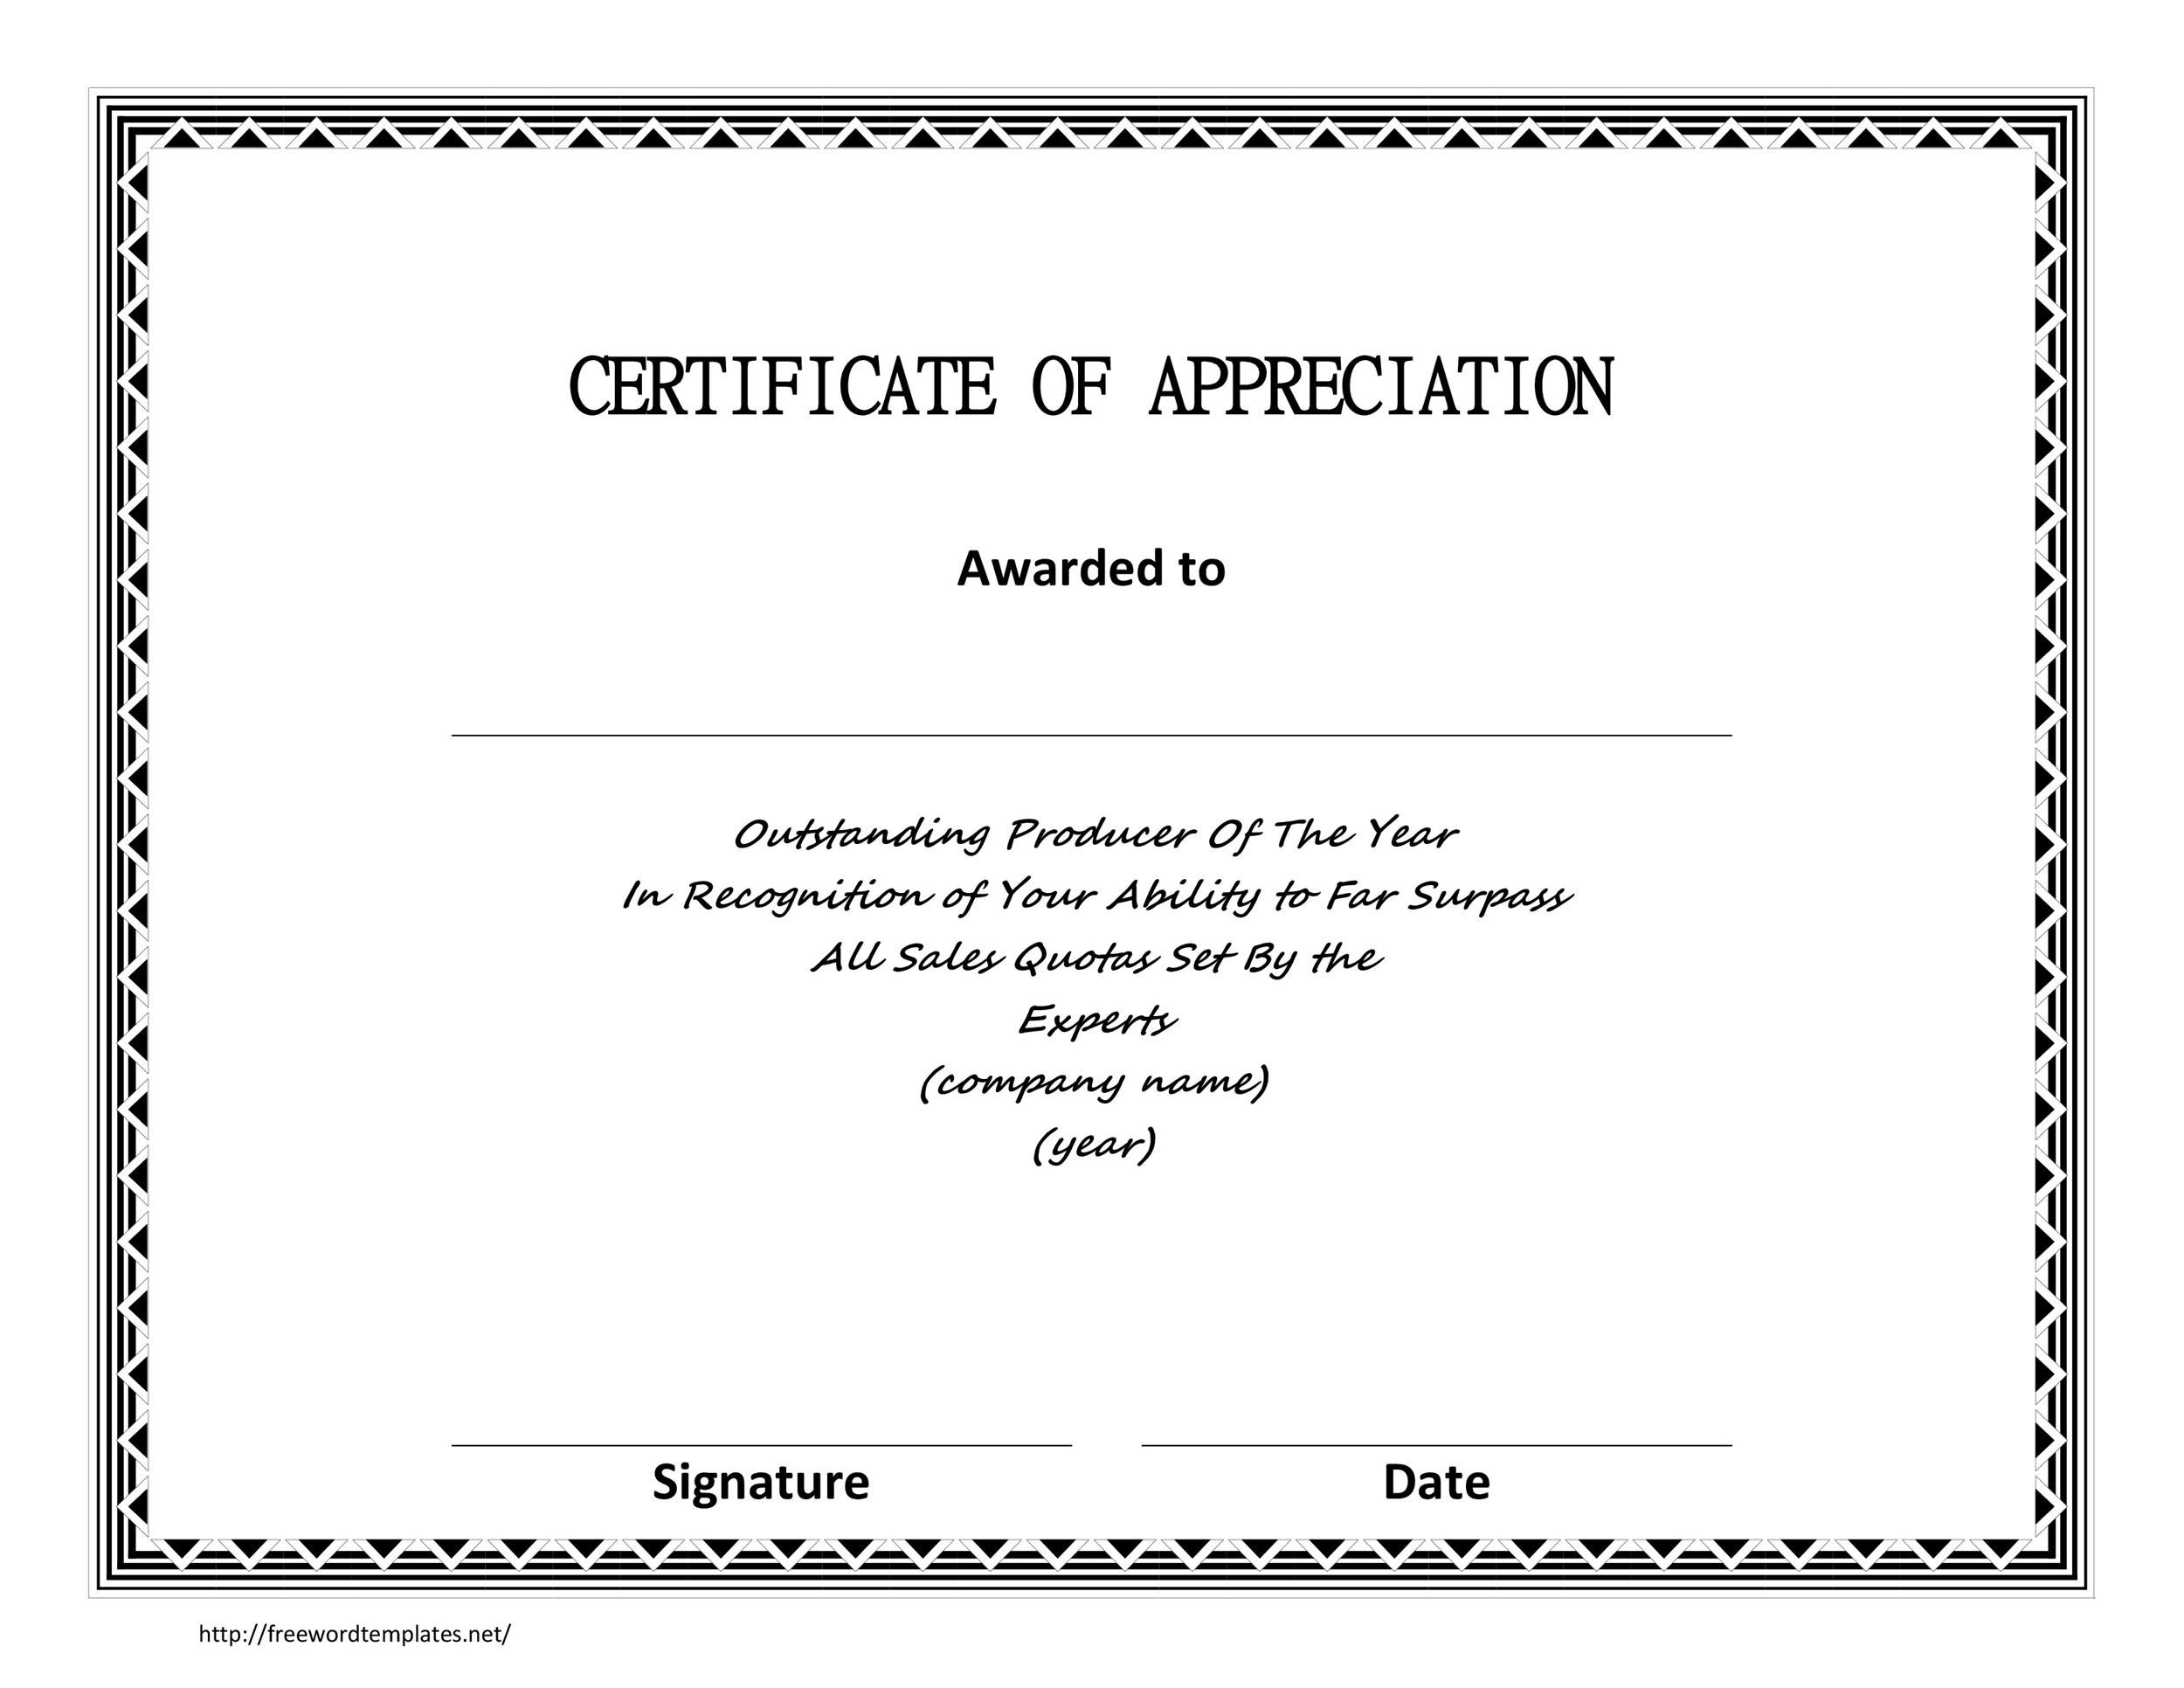 30 free certificate of appreciation templates and letters printable certificate of appreciation 06 yadclub